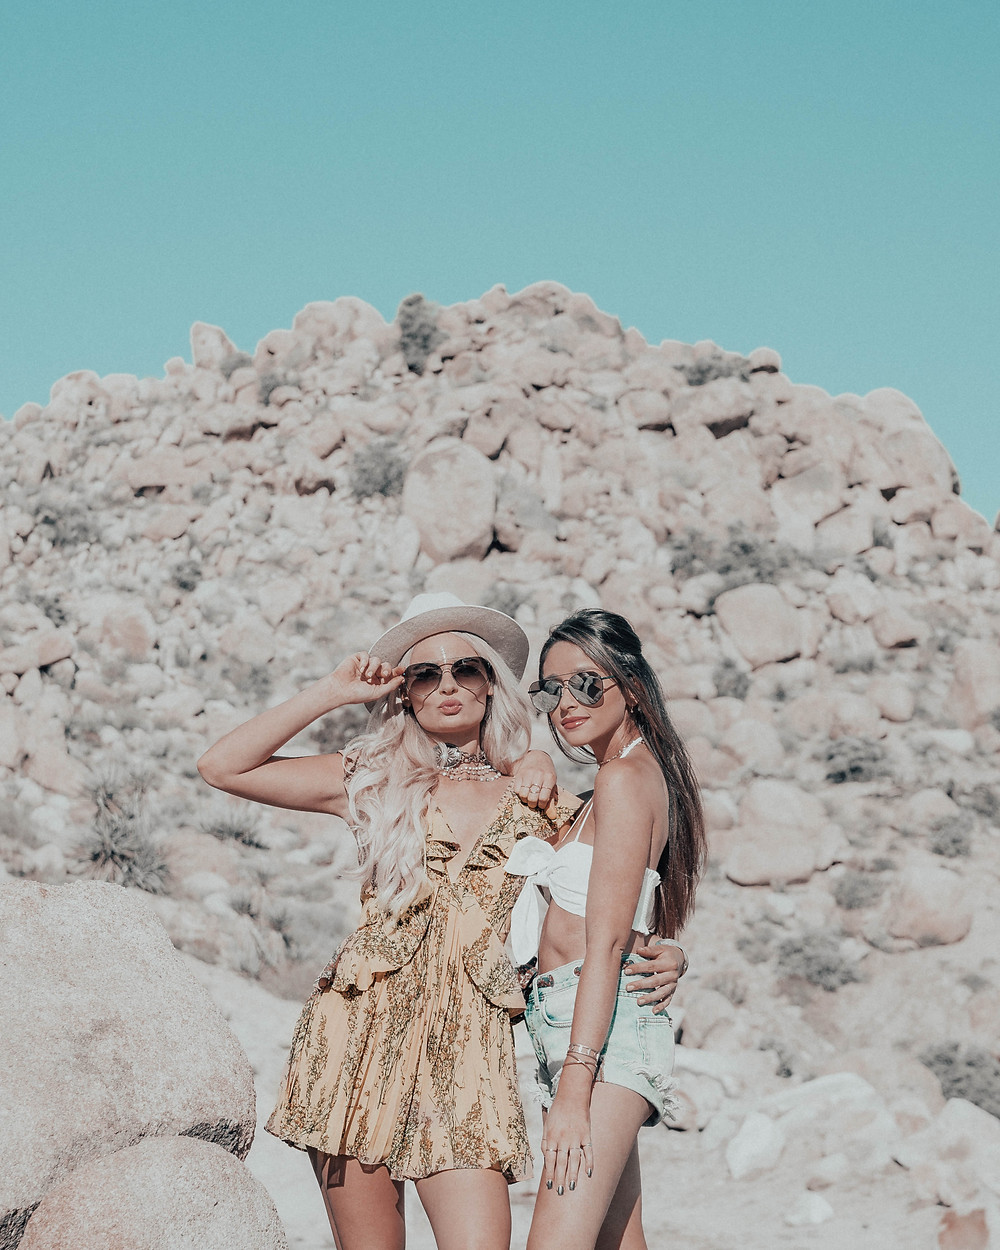 BFF Coachella inspiration in a flowy romper paired with oversized sunglasses. desert style. yellow romper